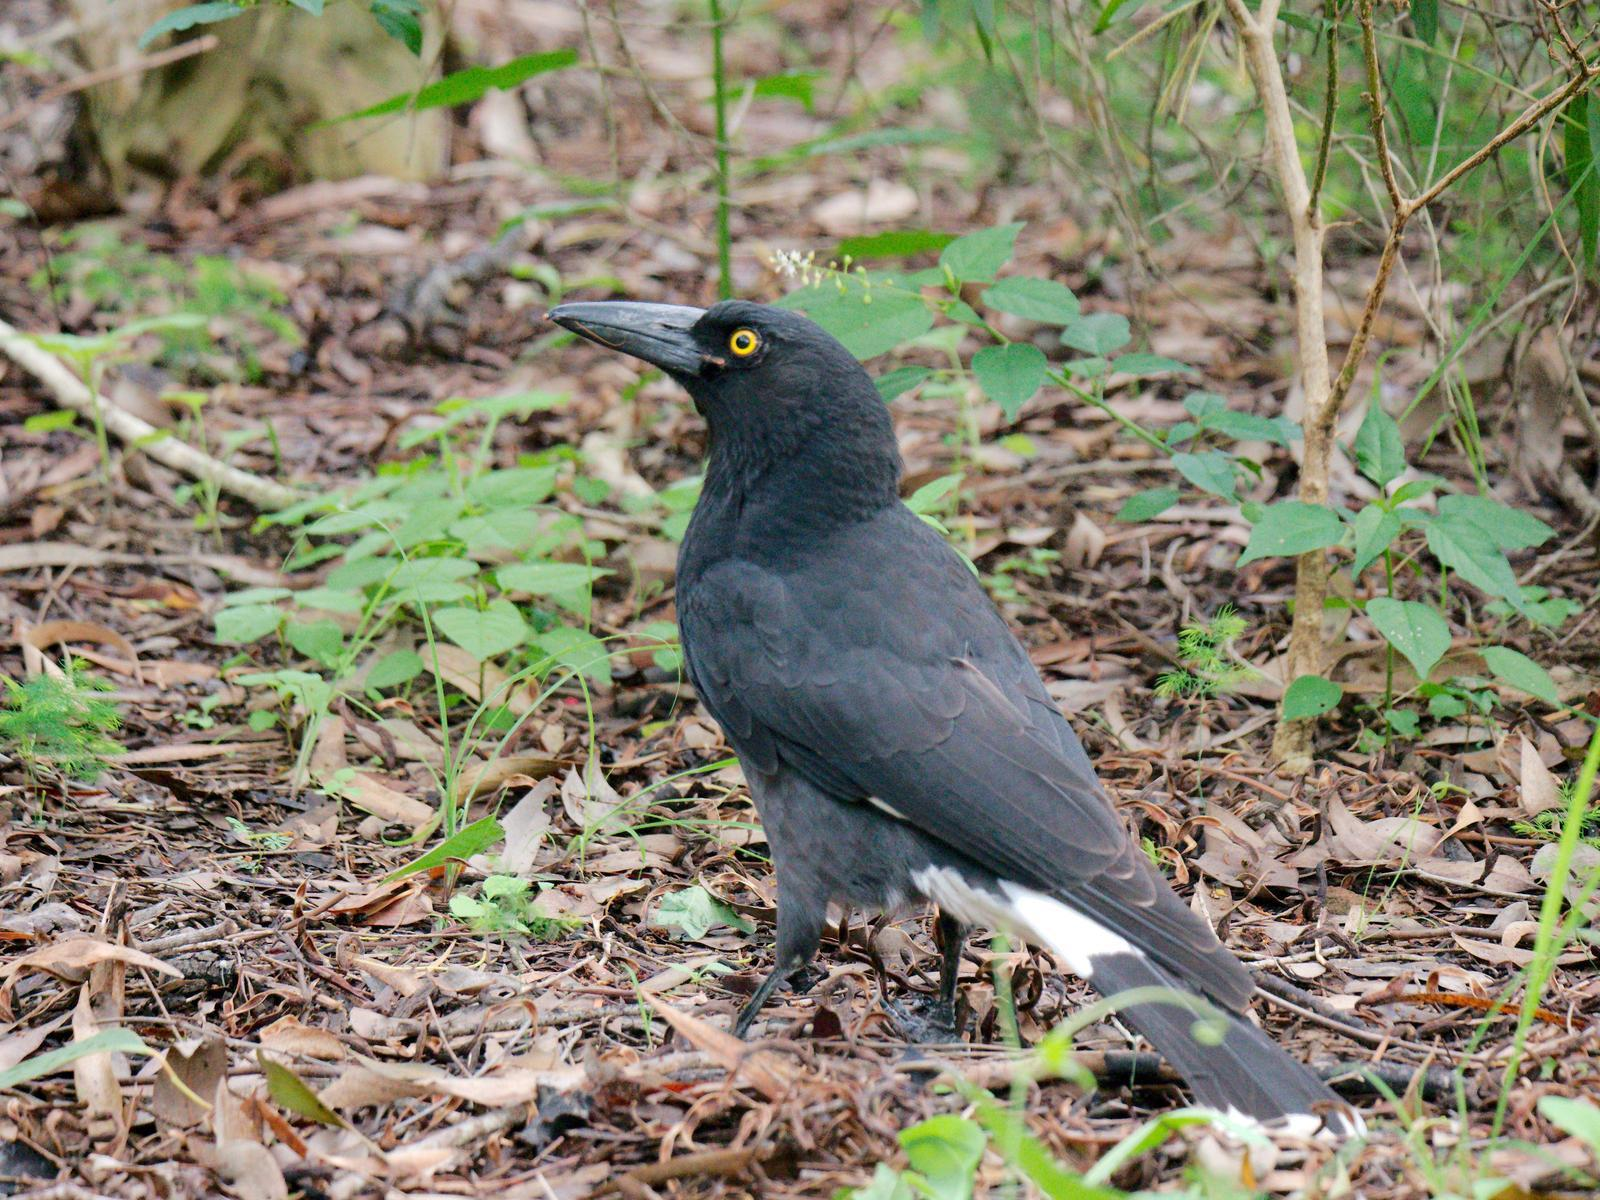 Pied Currawong Photo by Peter Lowe